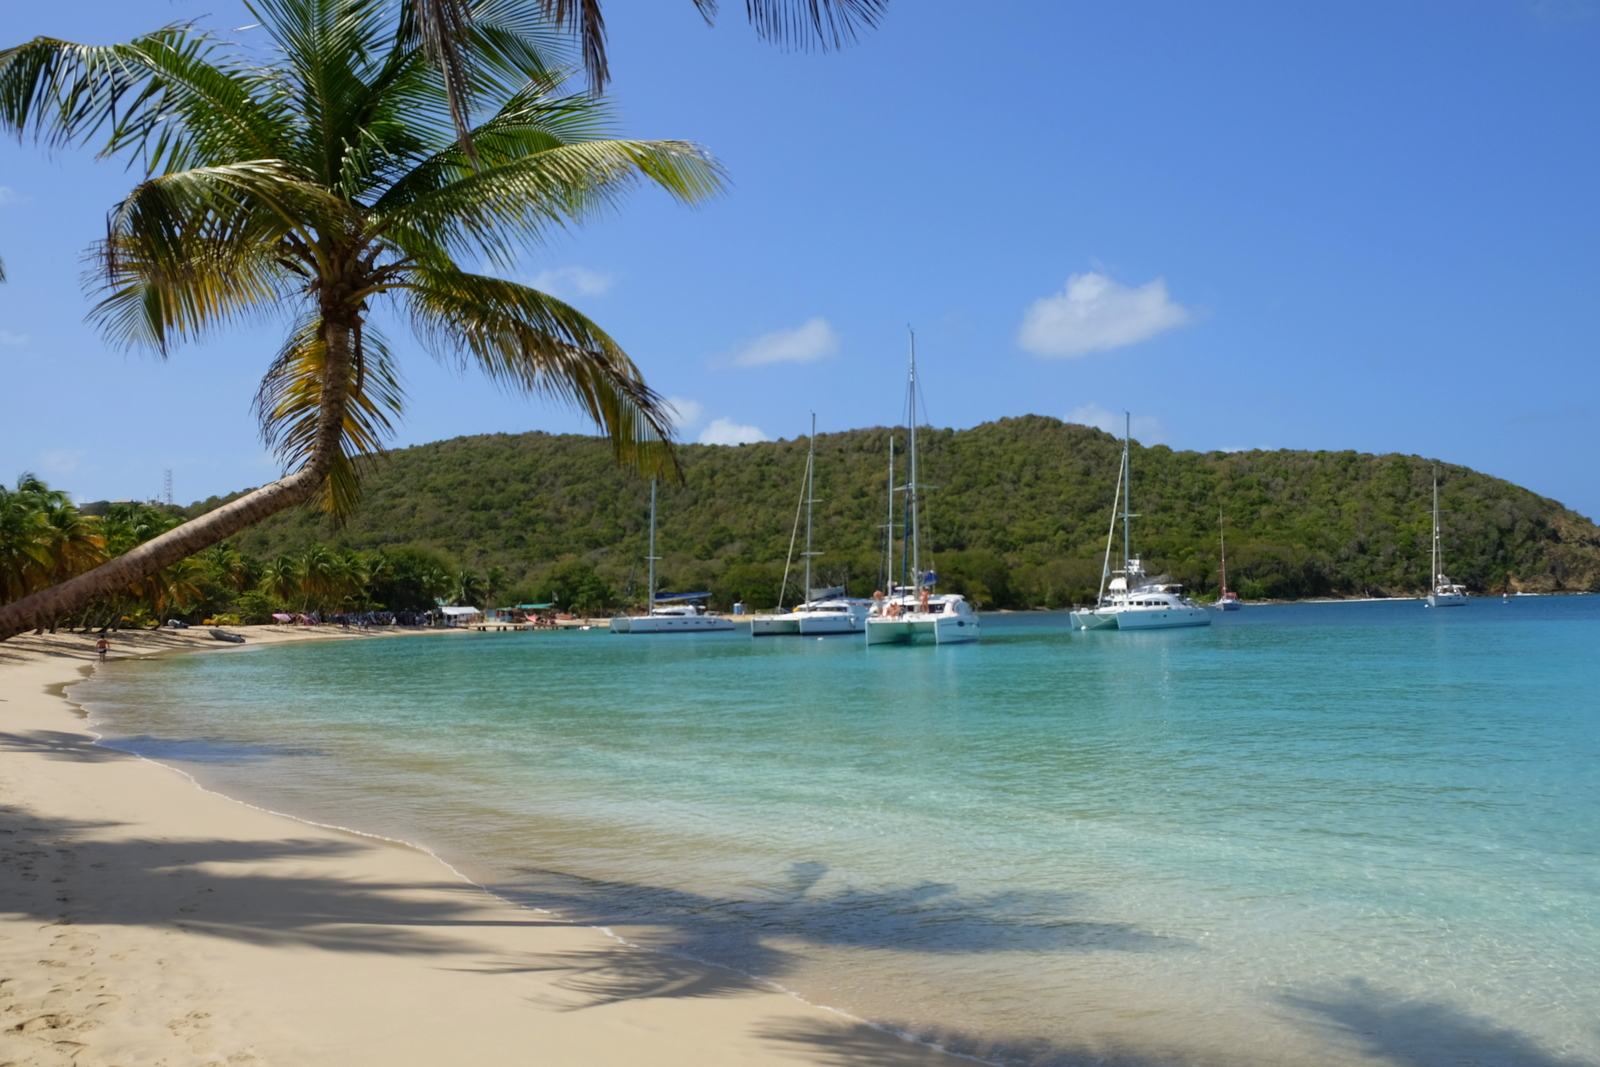 Saltwhistle Bay is a classic Caribbean beach on the island of Mayreau, part of St. Vincent and the Grenadines. - JIM BYERS PHOTO